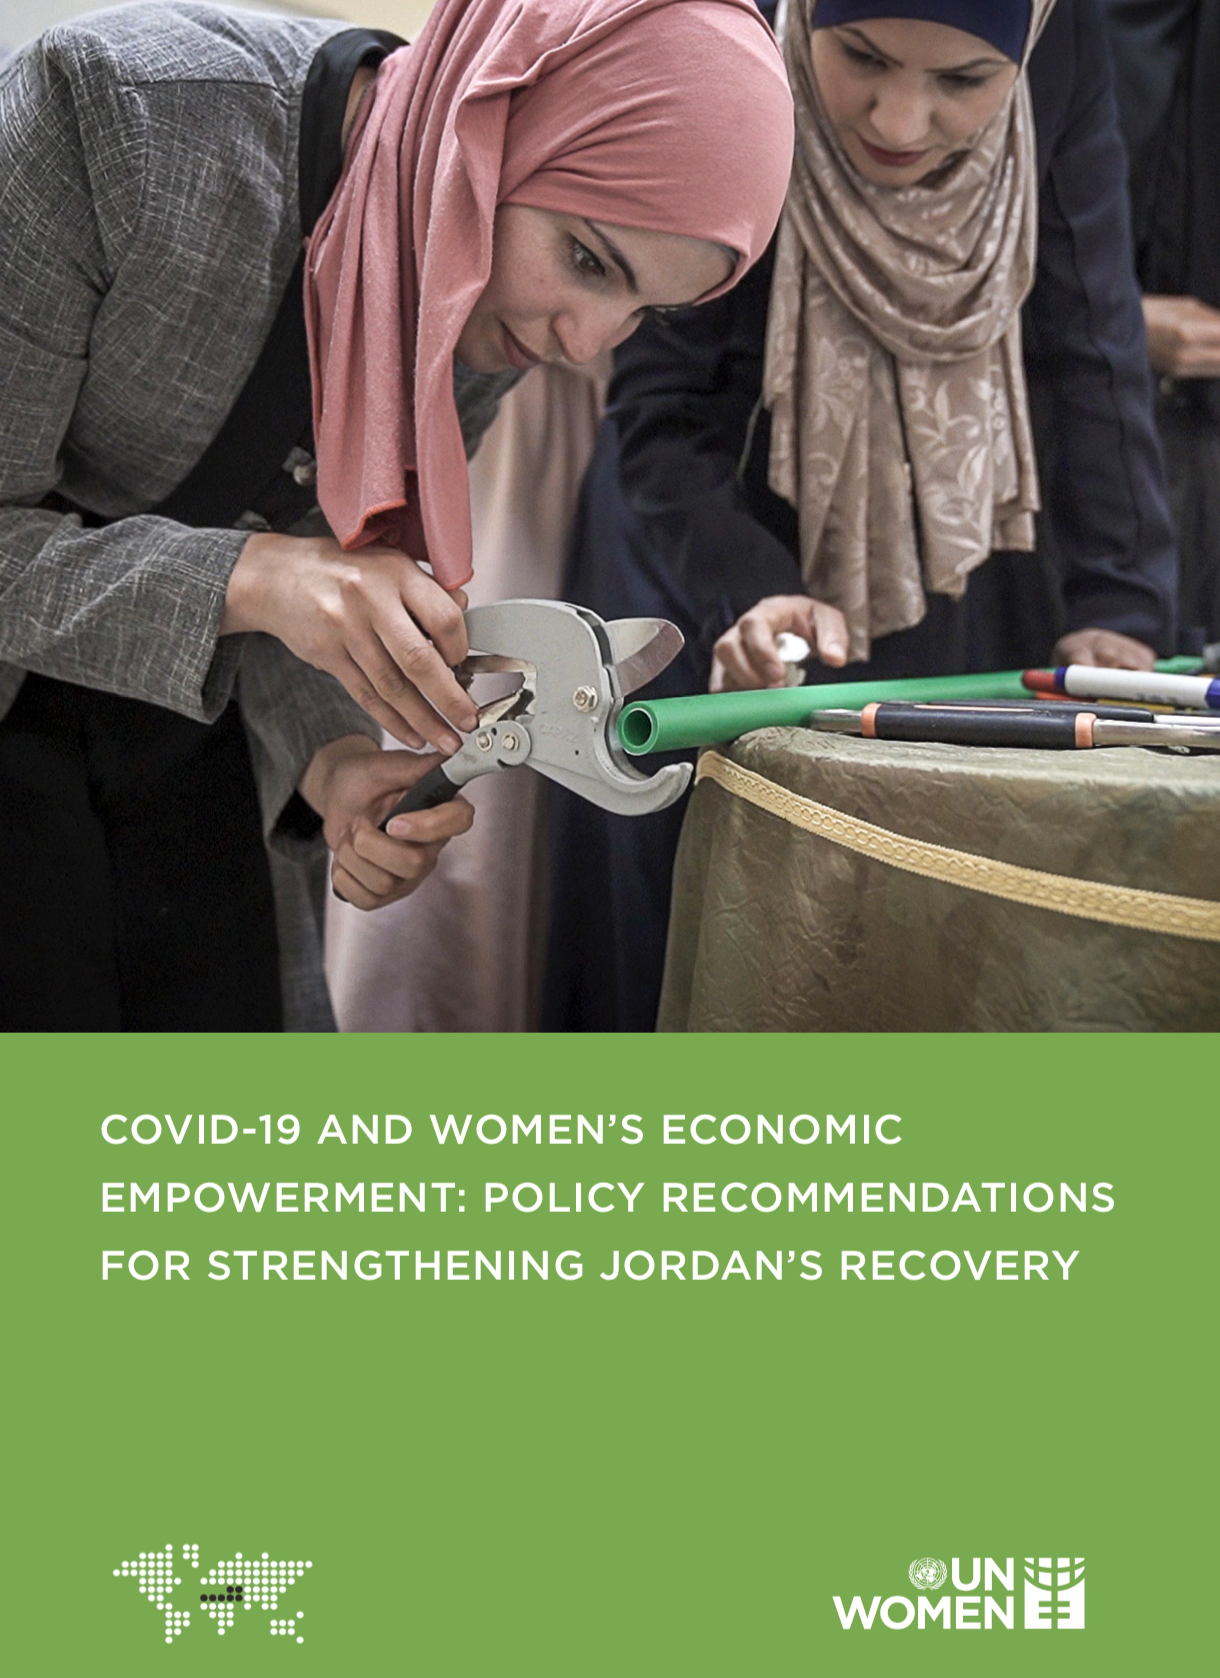 COVID-19 AND WOMEN'S ECONOMIC EMPOWERMENT: POLICY RECOMMENDATIONS FOR STRENGTHENING JORDAN'S RECOVERY, Research Paper, UN Women.